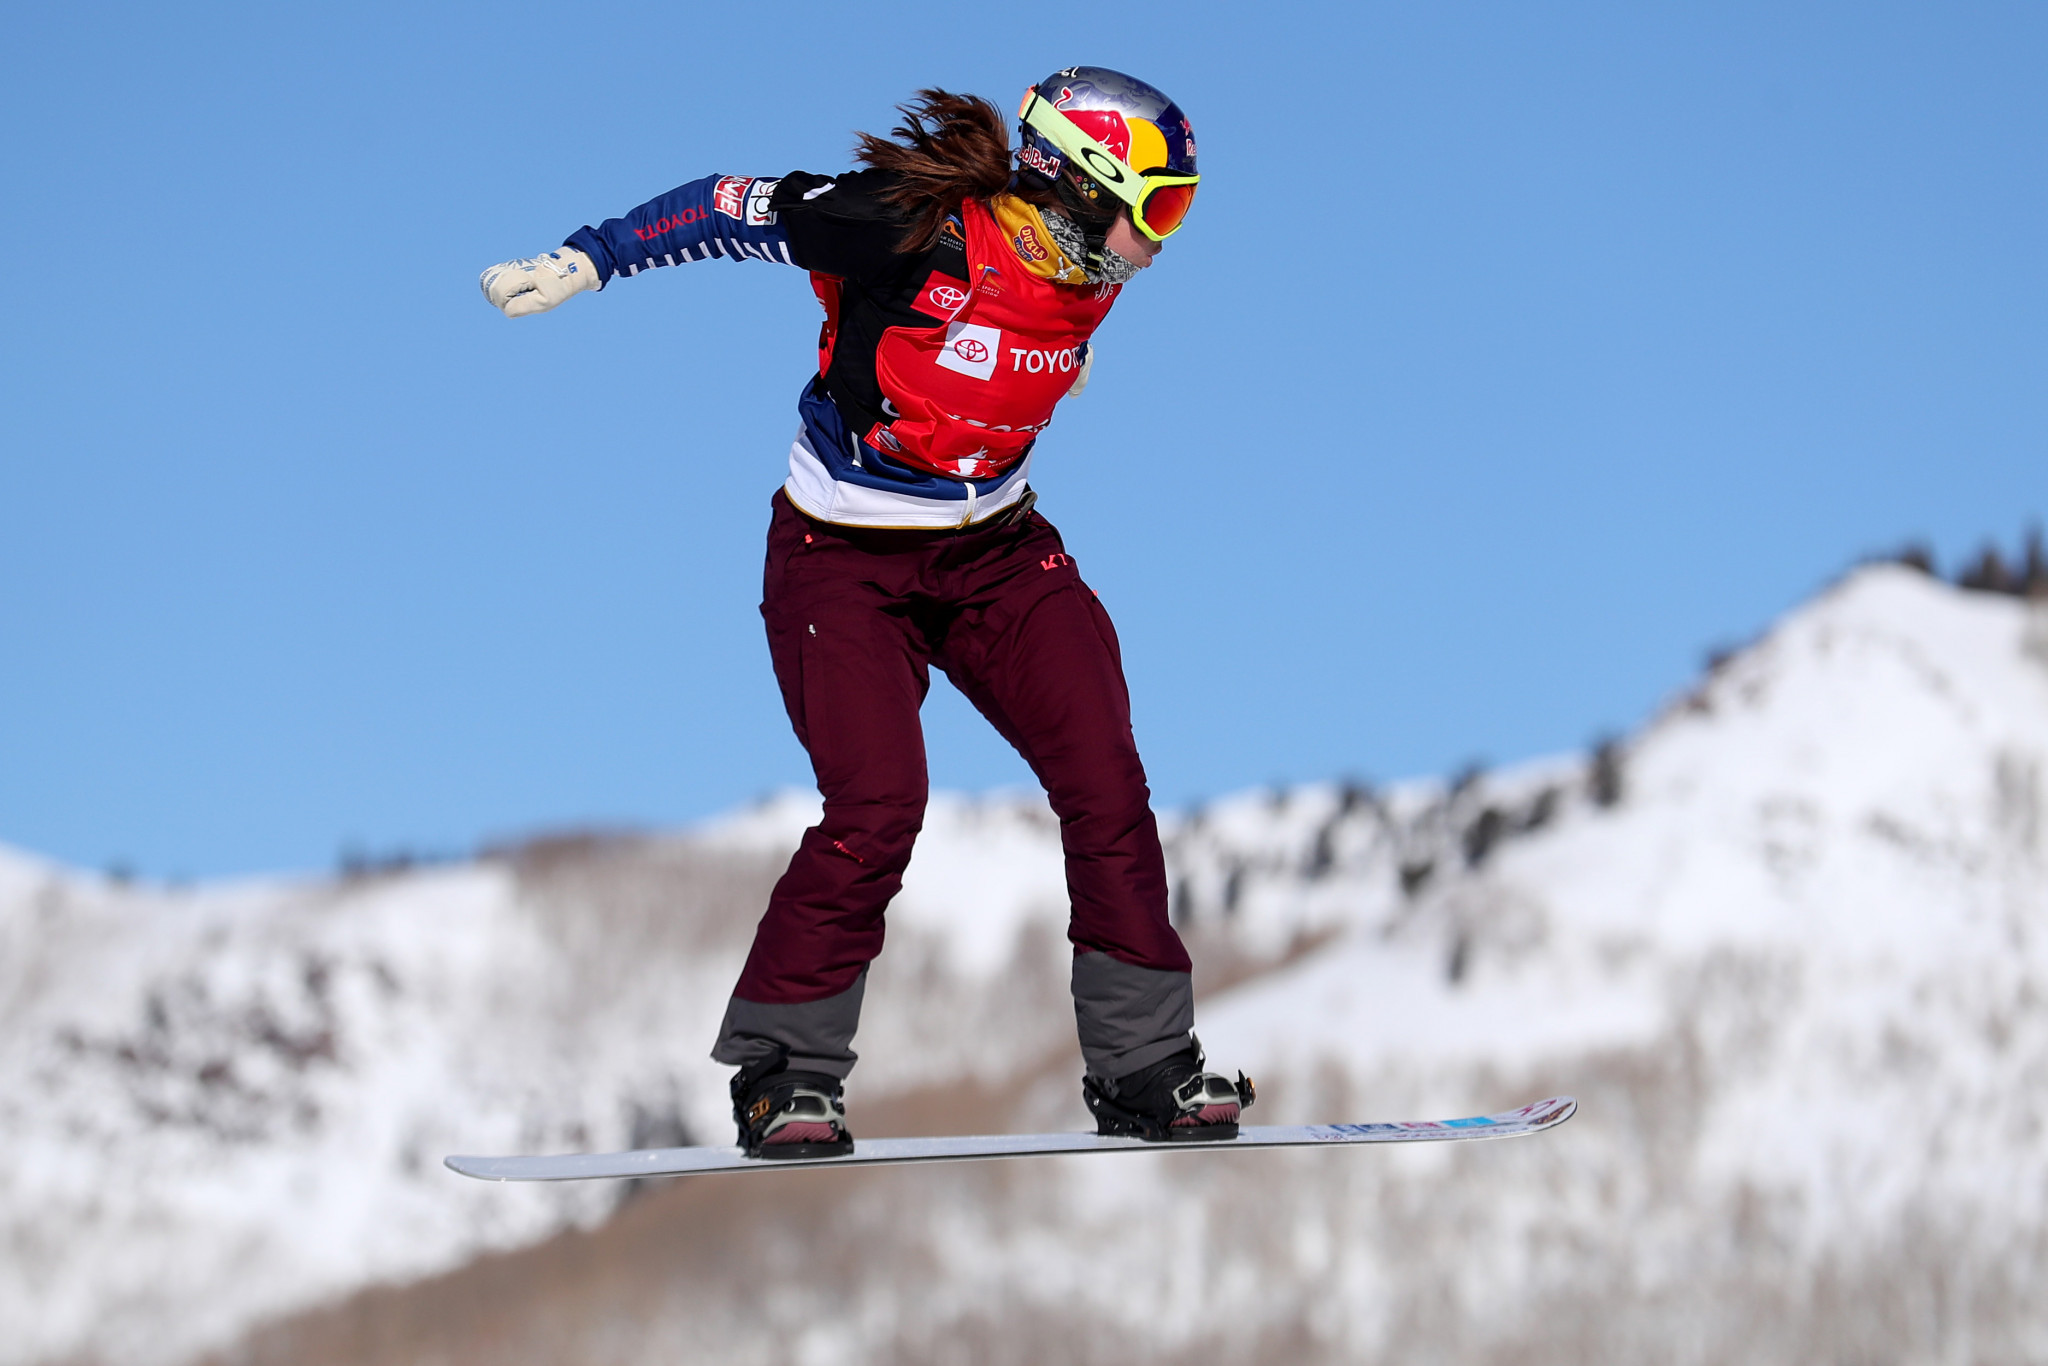 Samková impresses in women's qualifying at FIS Snowboard Cross World Cup